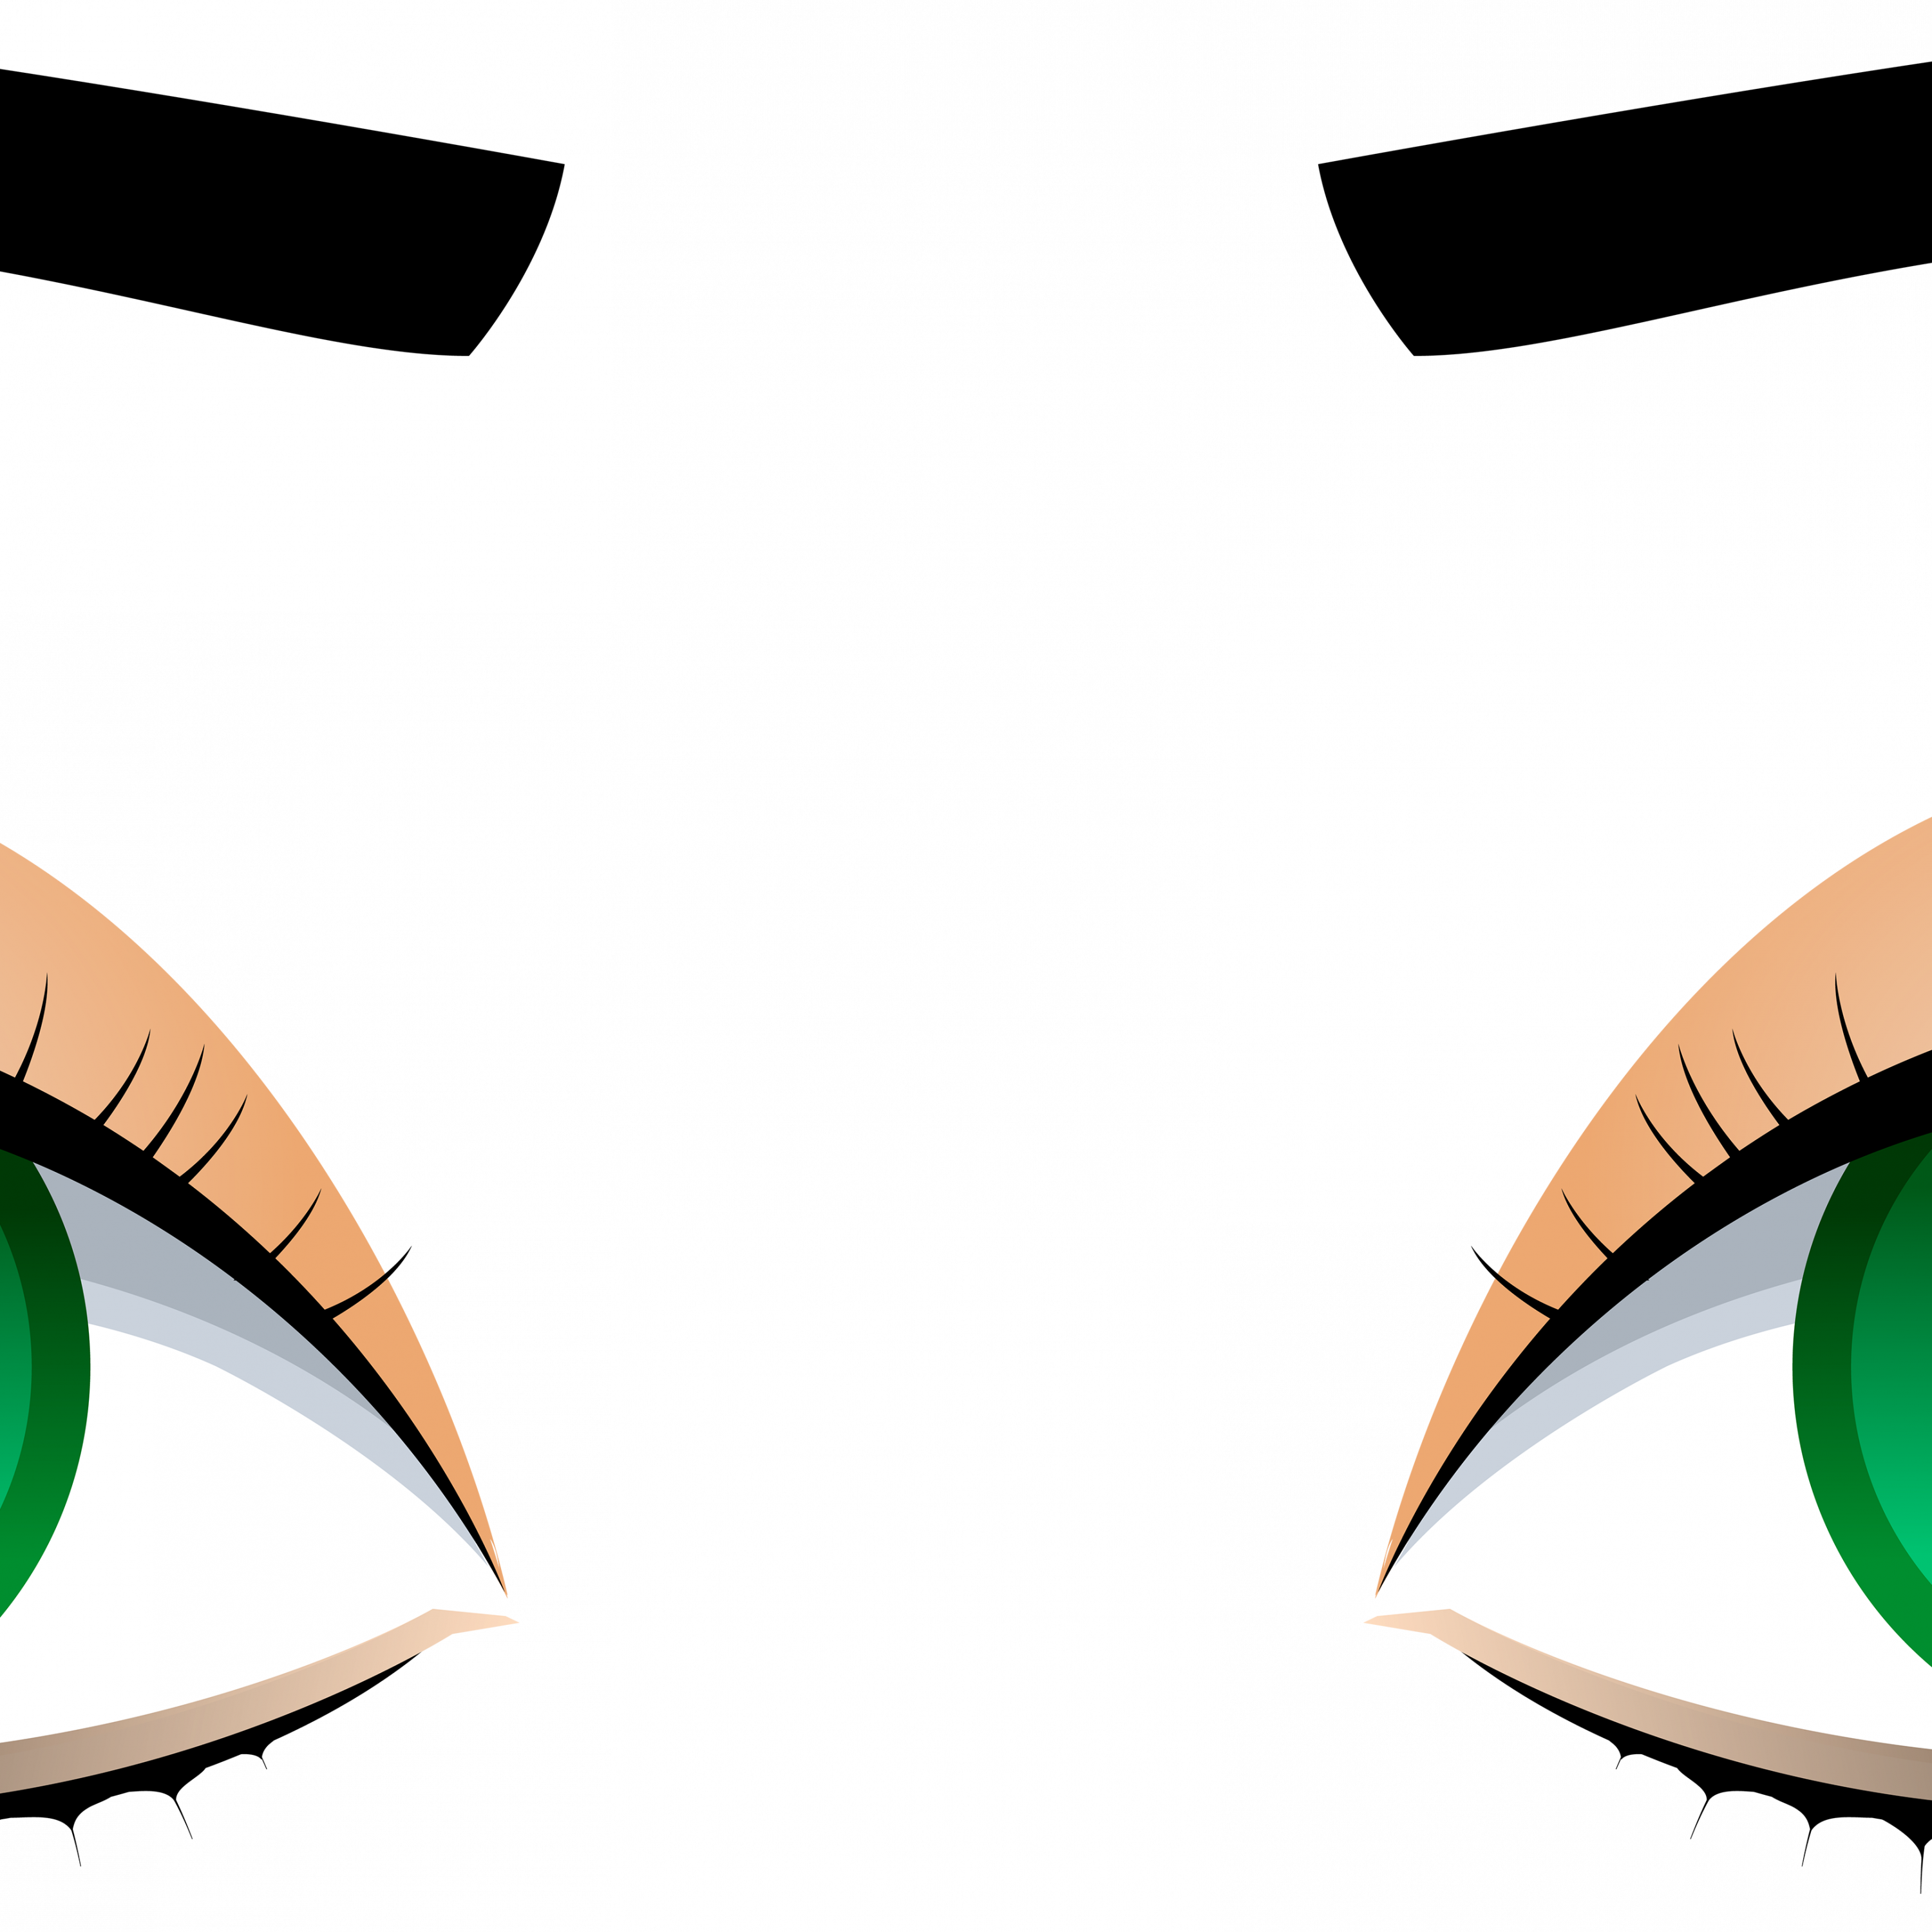 3000x3000 Female Eyes With Eyebrows Png Clip Art Best Web Clipart, Eyebrows